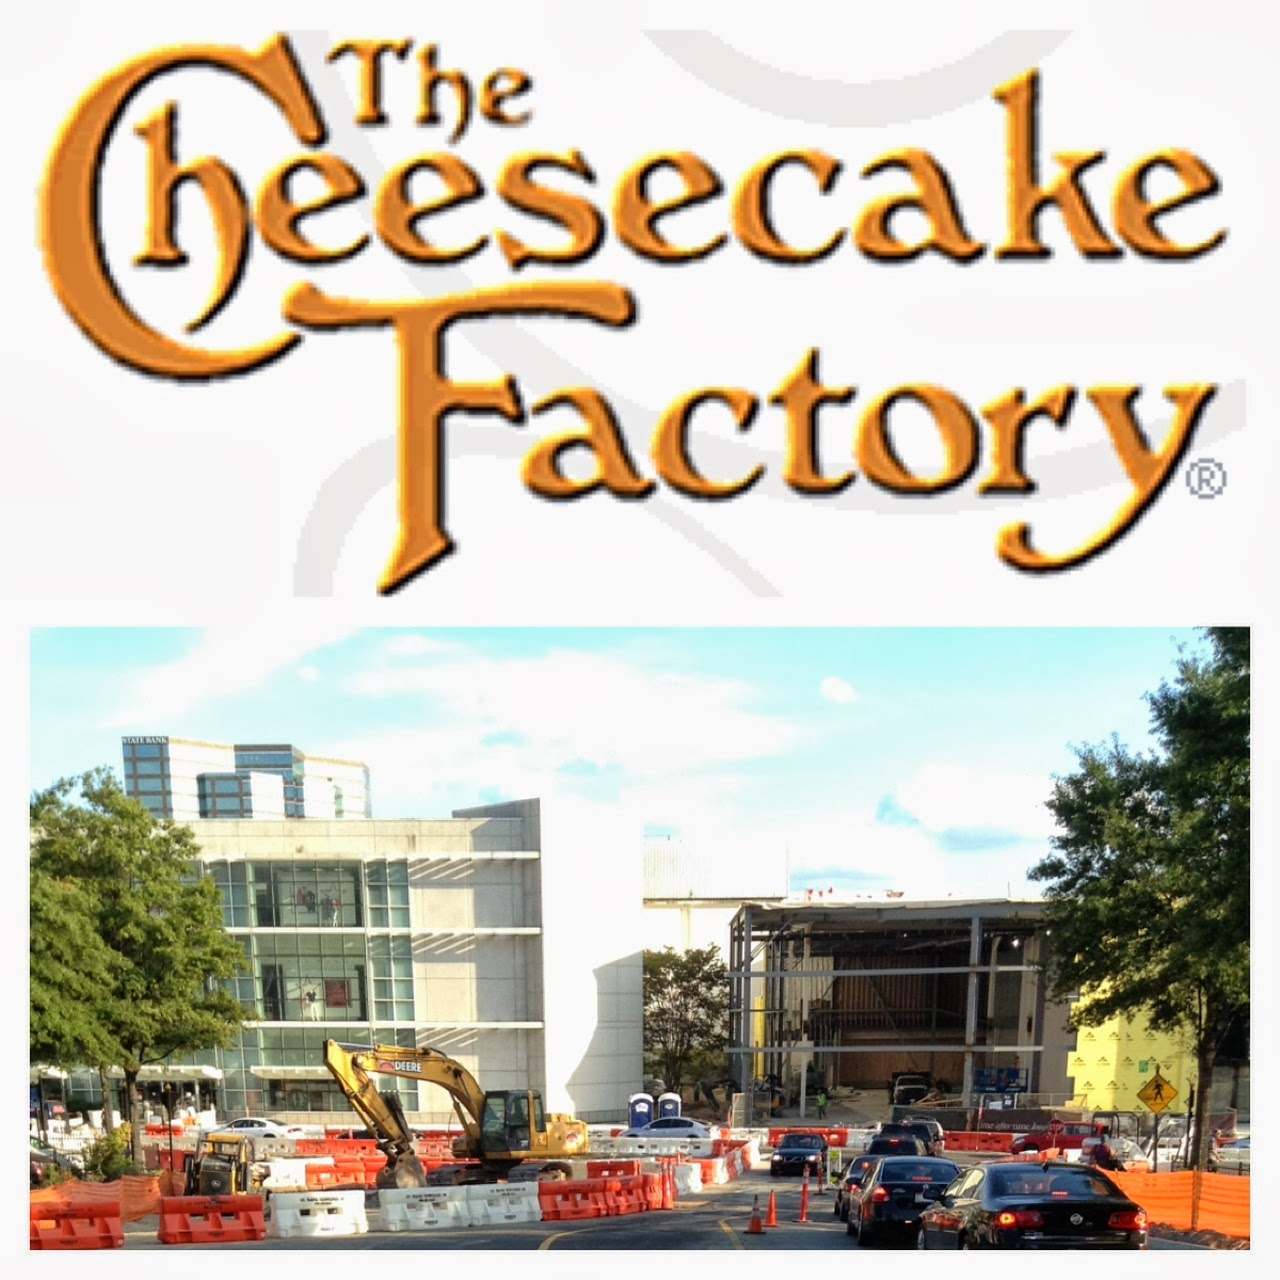 Tomorrow\'s News Today - Atlanta: The Cheescake Factory is Officially ...